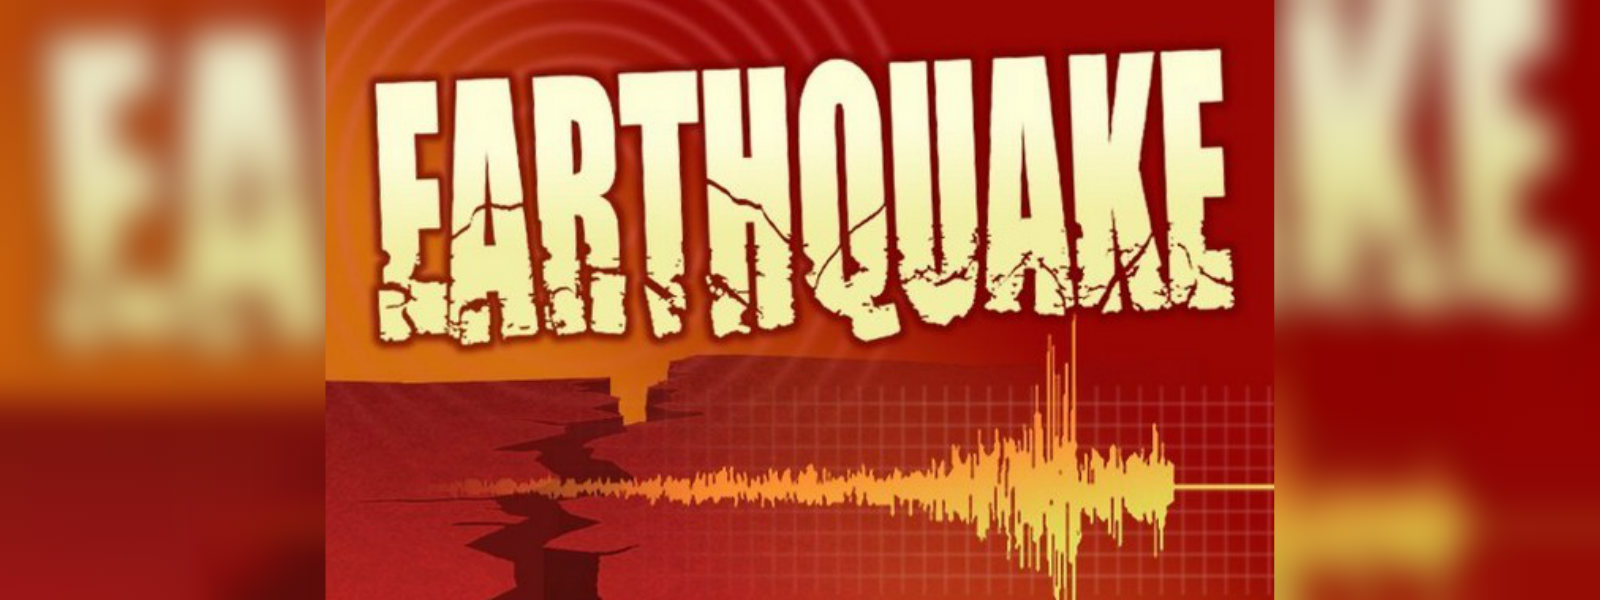 Quake of 5.7 magnitude shakes buildings in El Salvador and Nicaragua